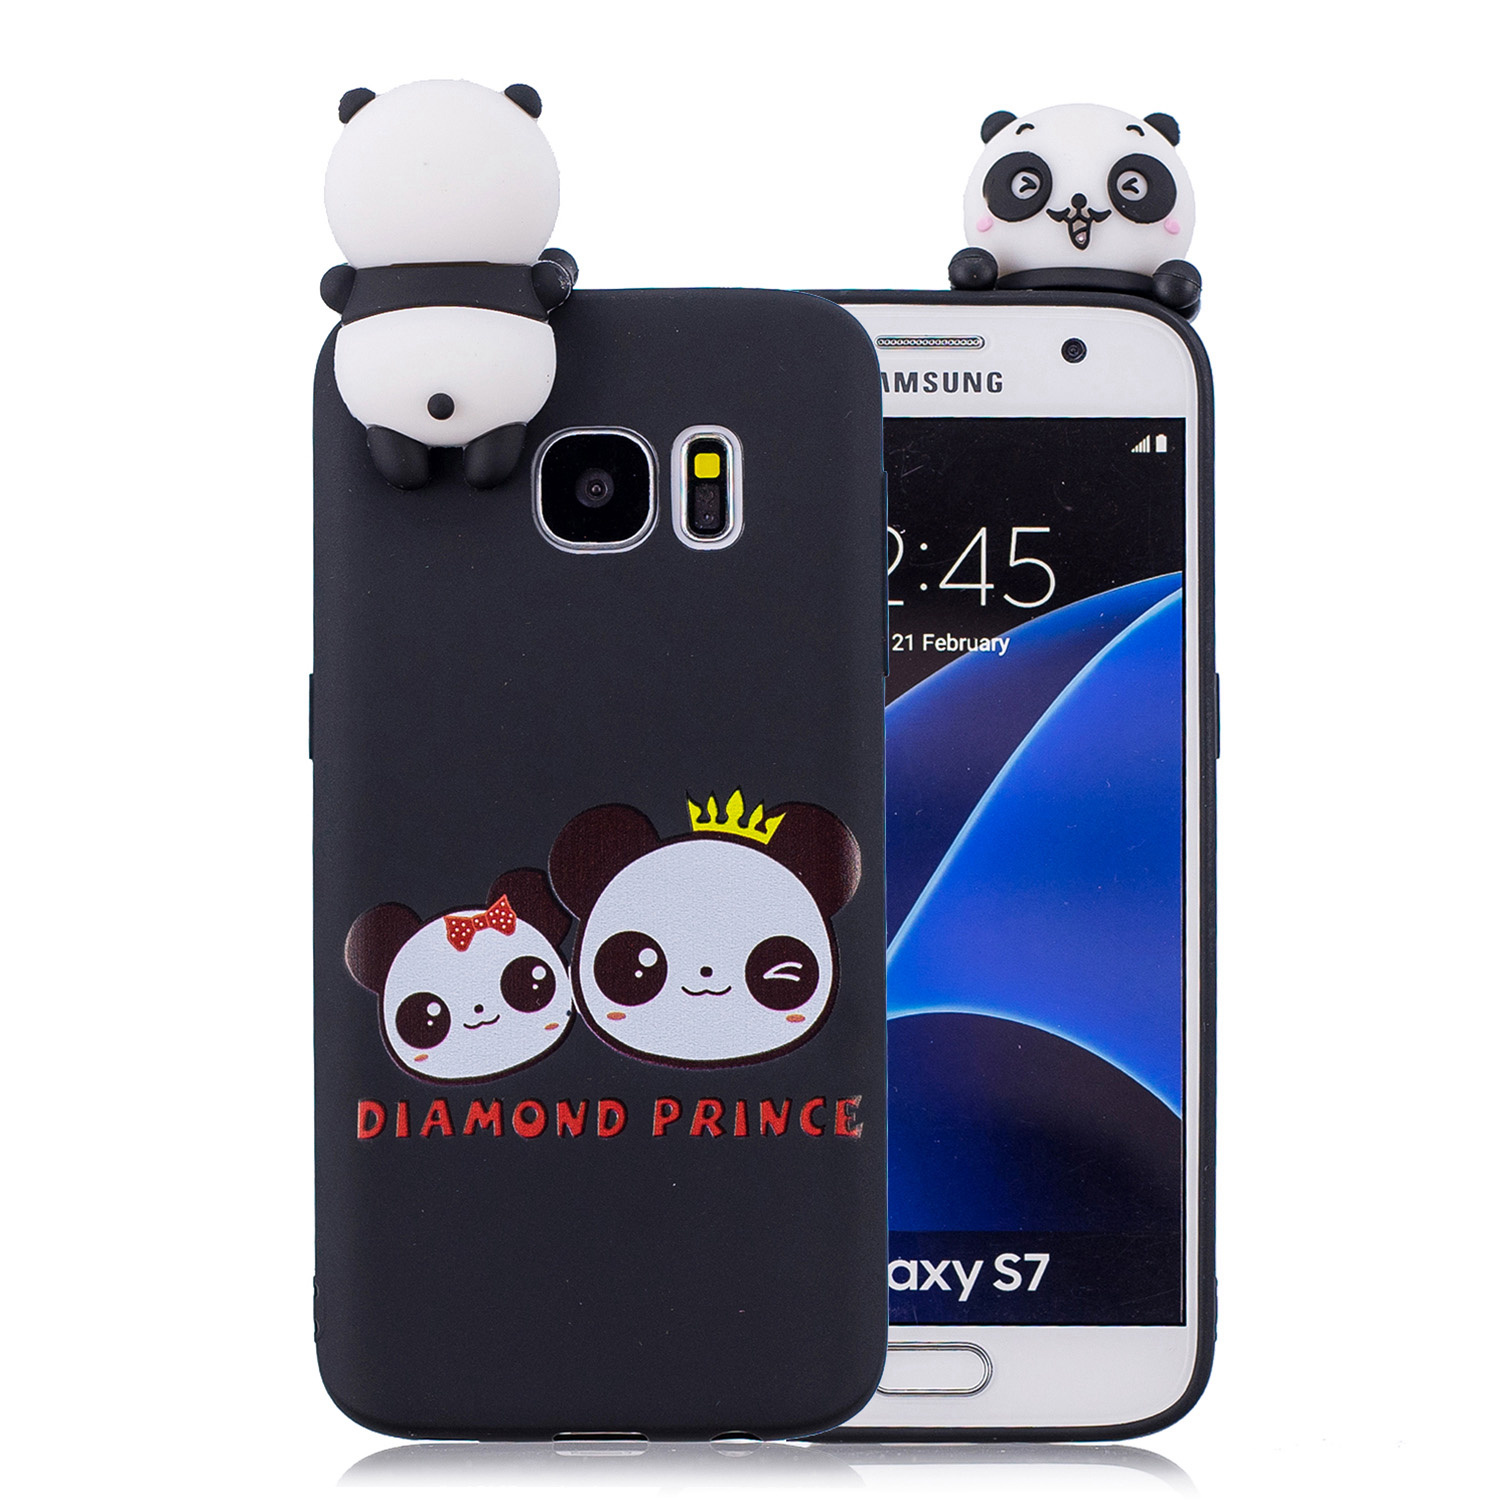 Lovely Cartoon Squishy Phone Cases for samsung galaxy S7 Case Cute Smiling Cloud Soft Silicone stress relief cover